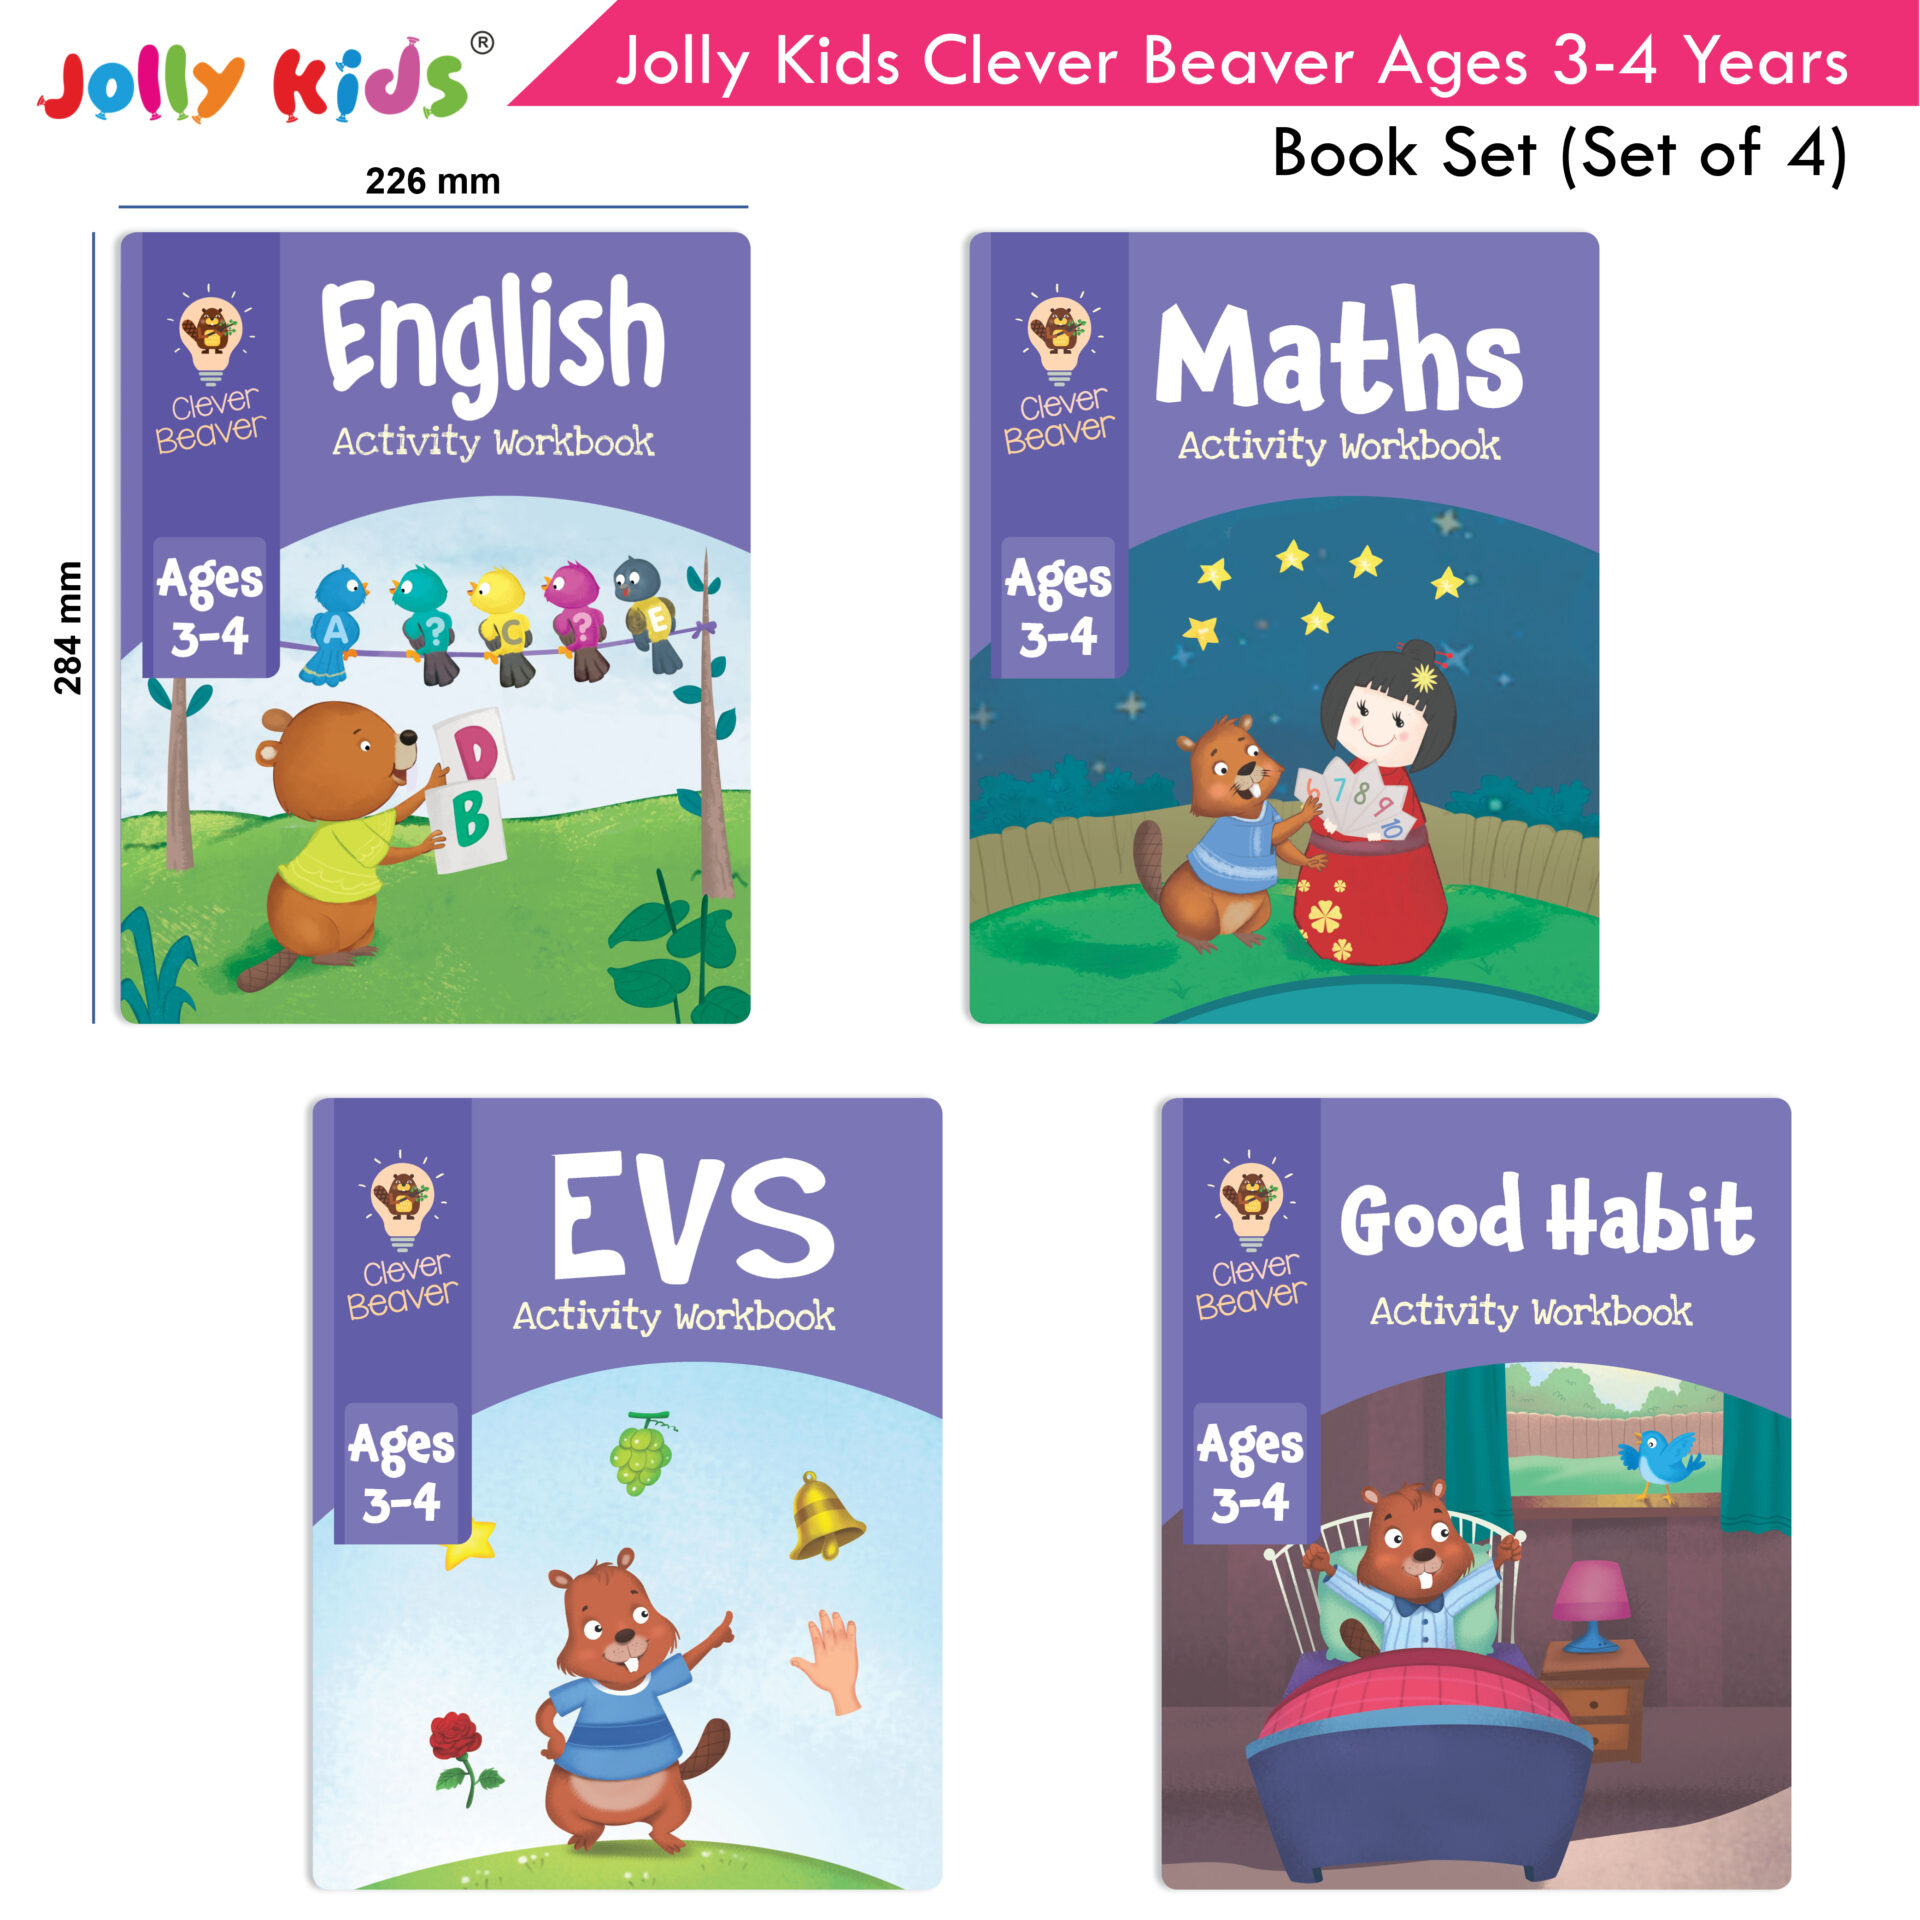 Jolly Kids Clever Beaver Ages 3 4 Years Book Set Set of 4 2